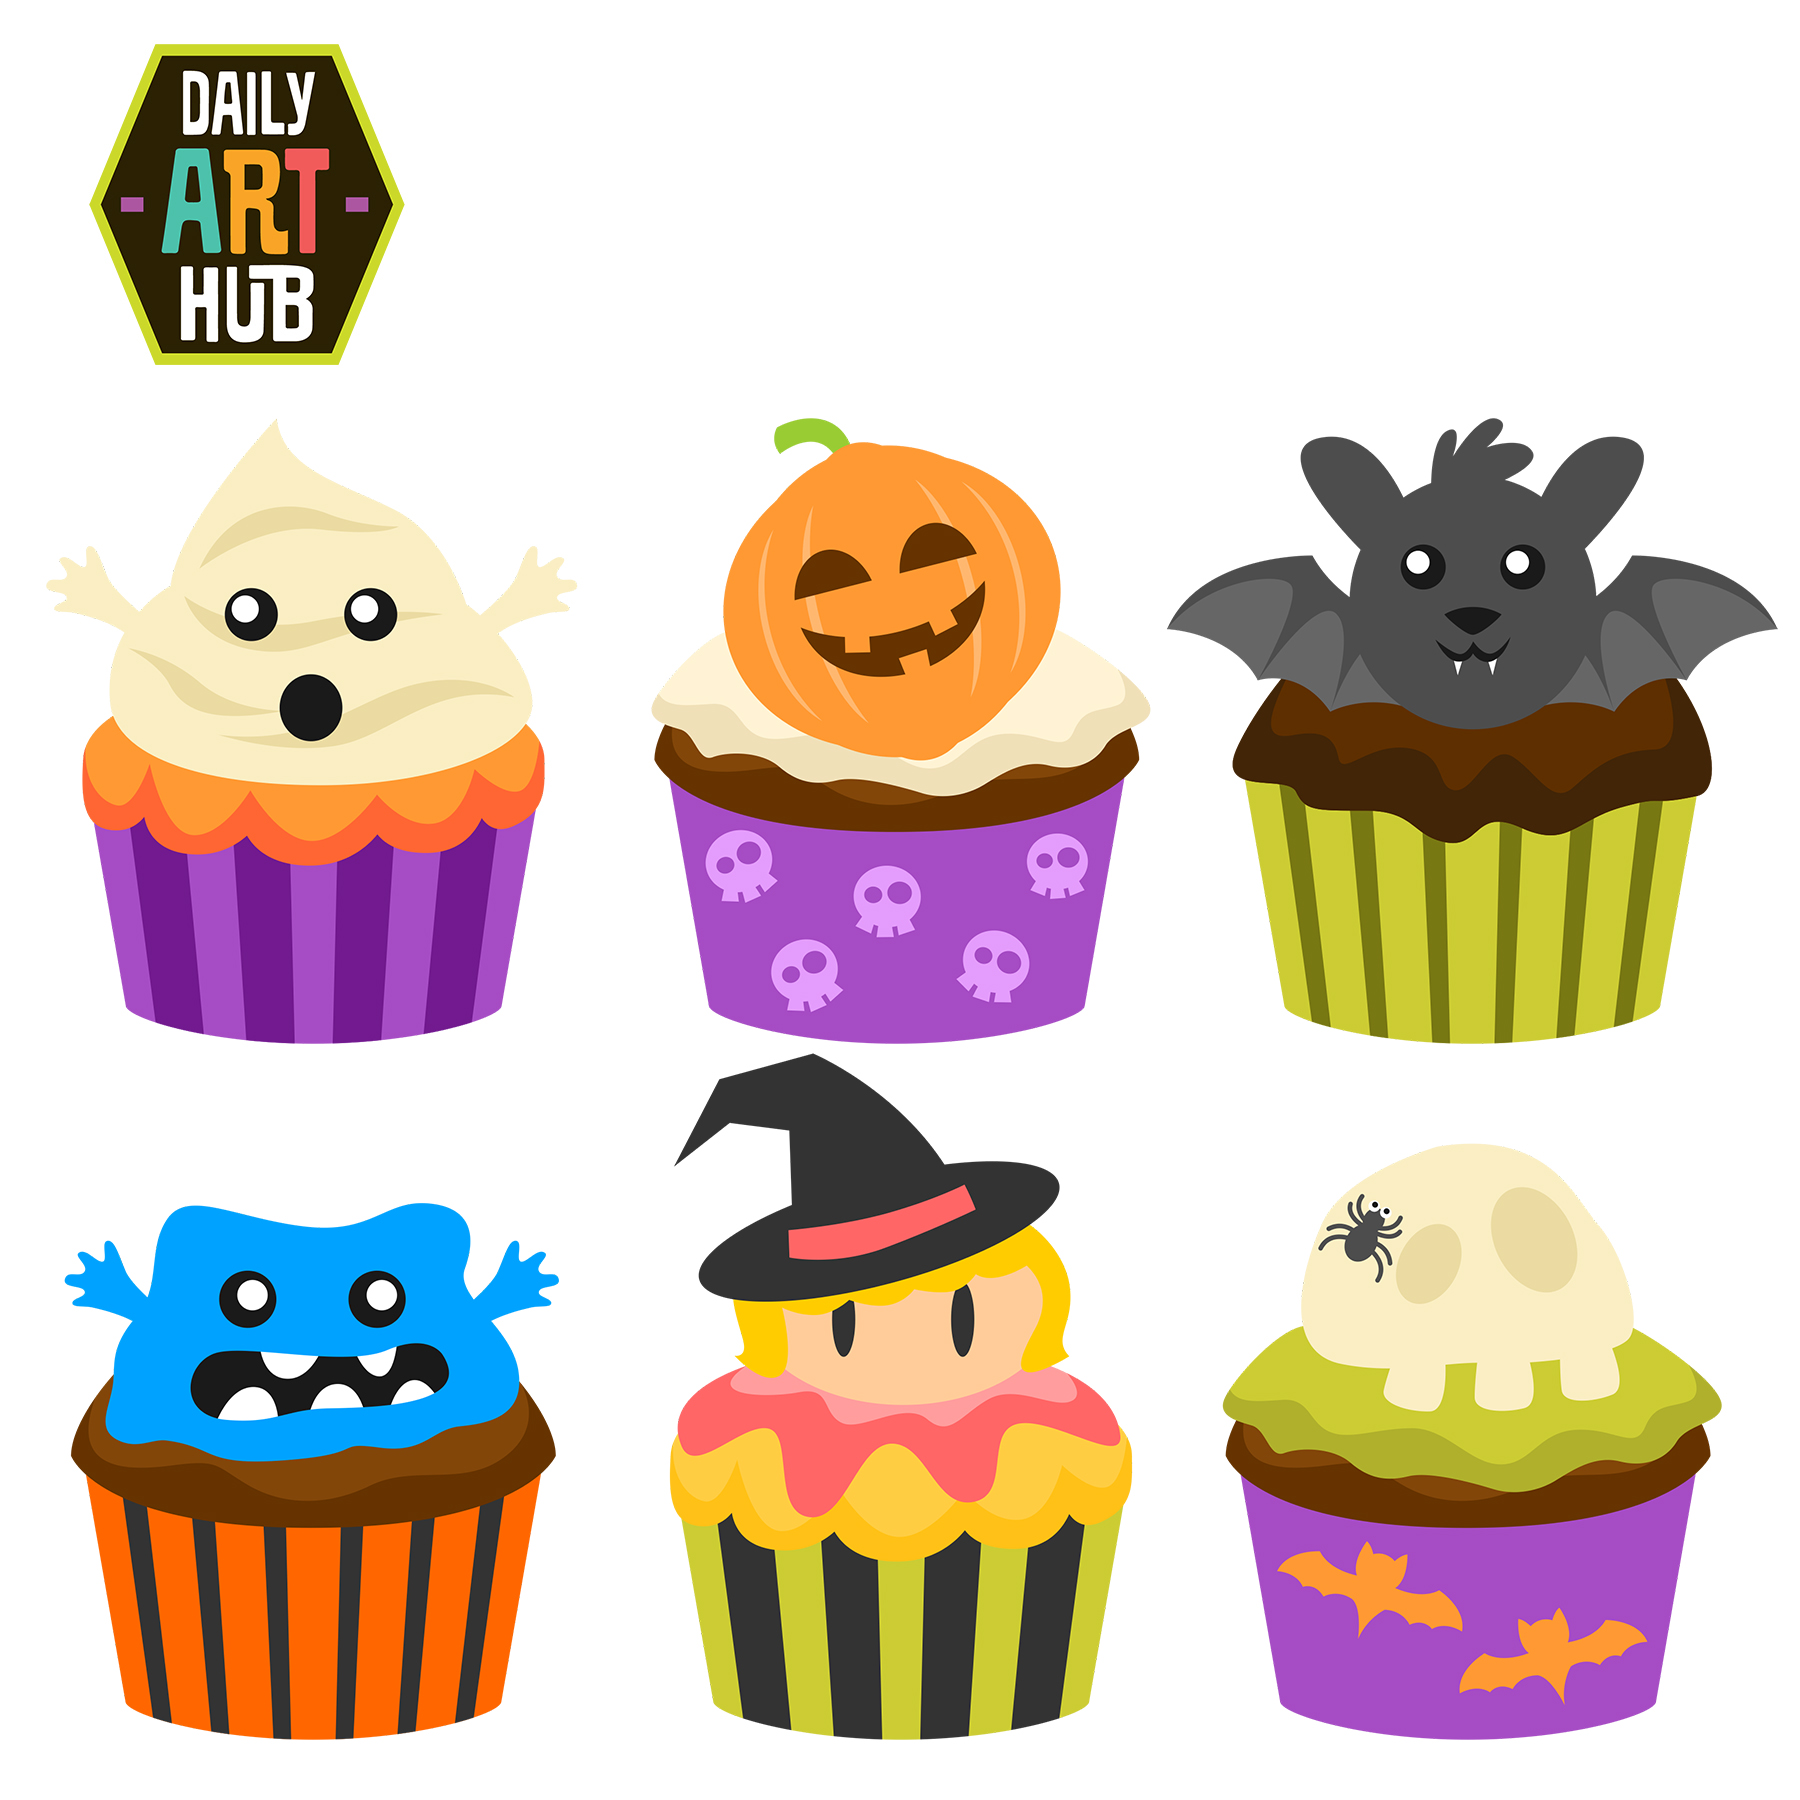 Cart clipart food booth Daily Set Halloween Hub Art